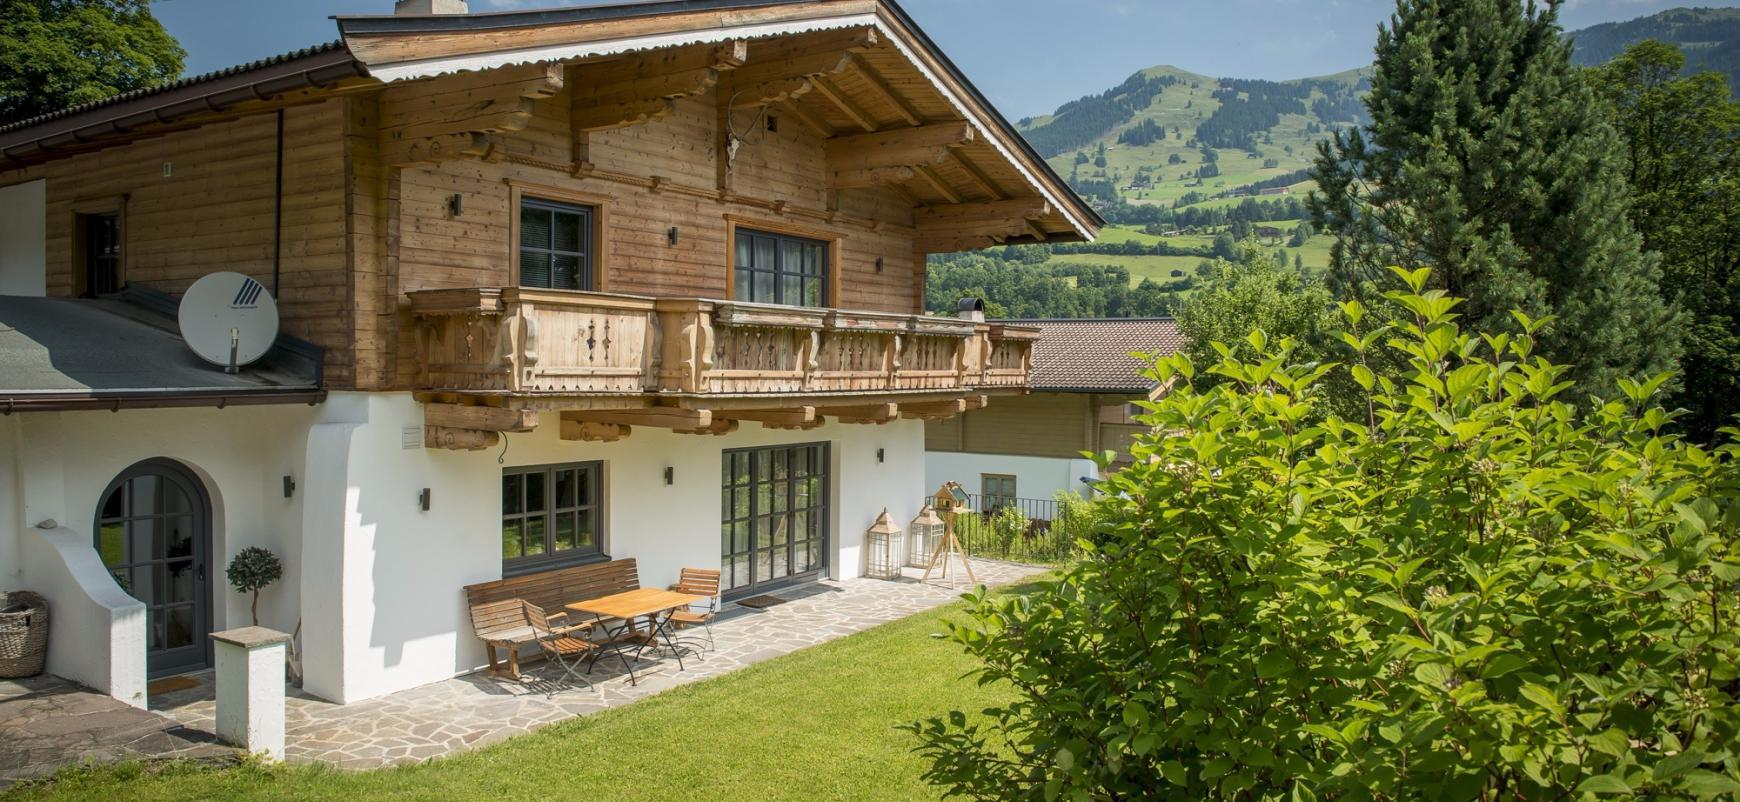 Charming chalet in Aurach bei Kitzbuhel for Sale - Tirol - Austria